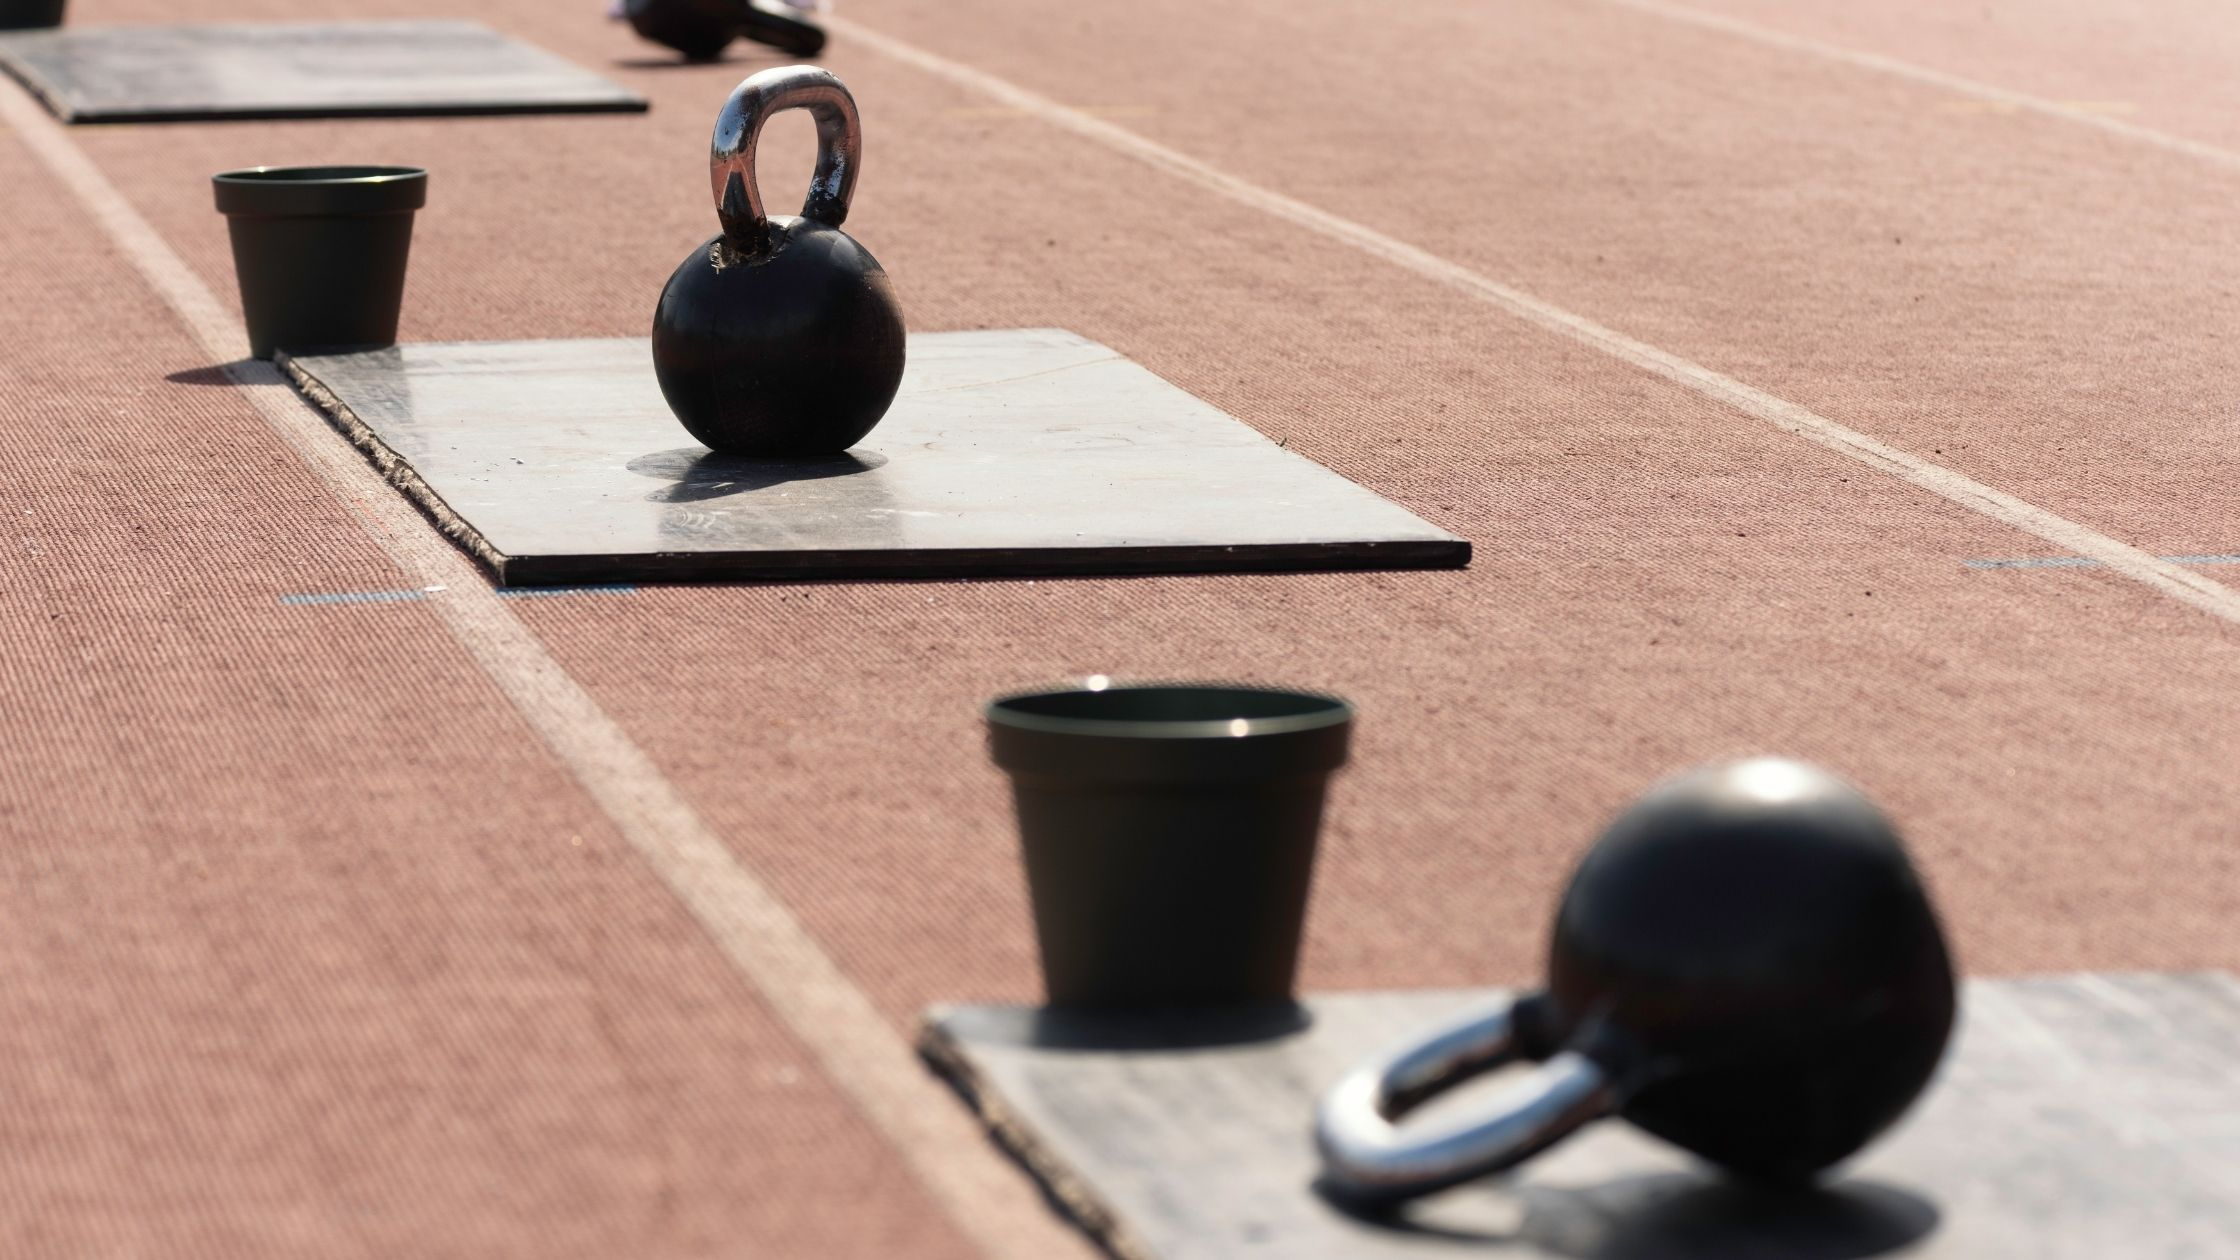 Types of Kettlebells: Competition kettlebell